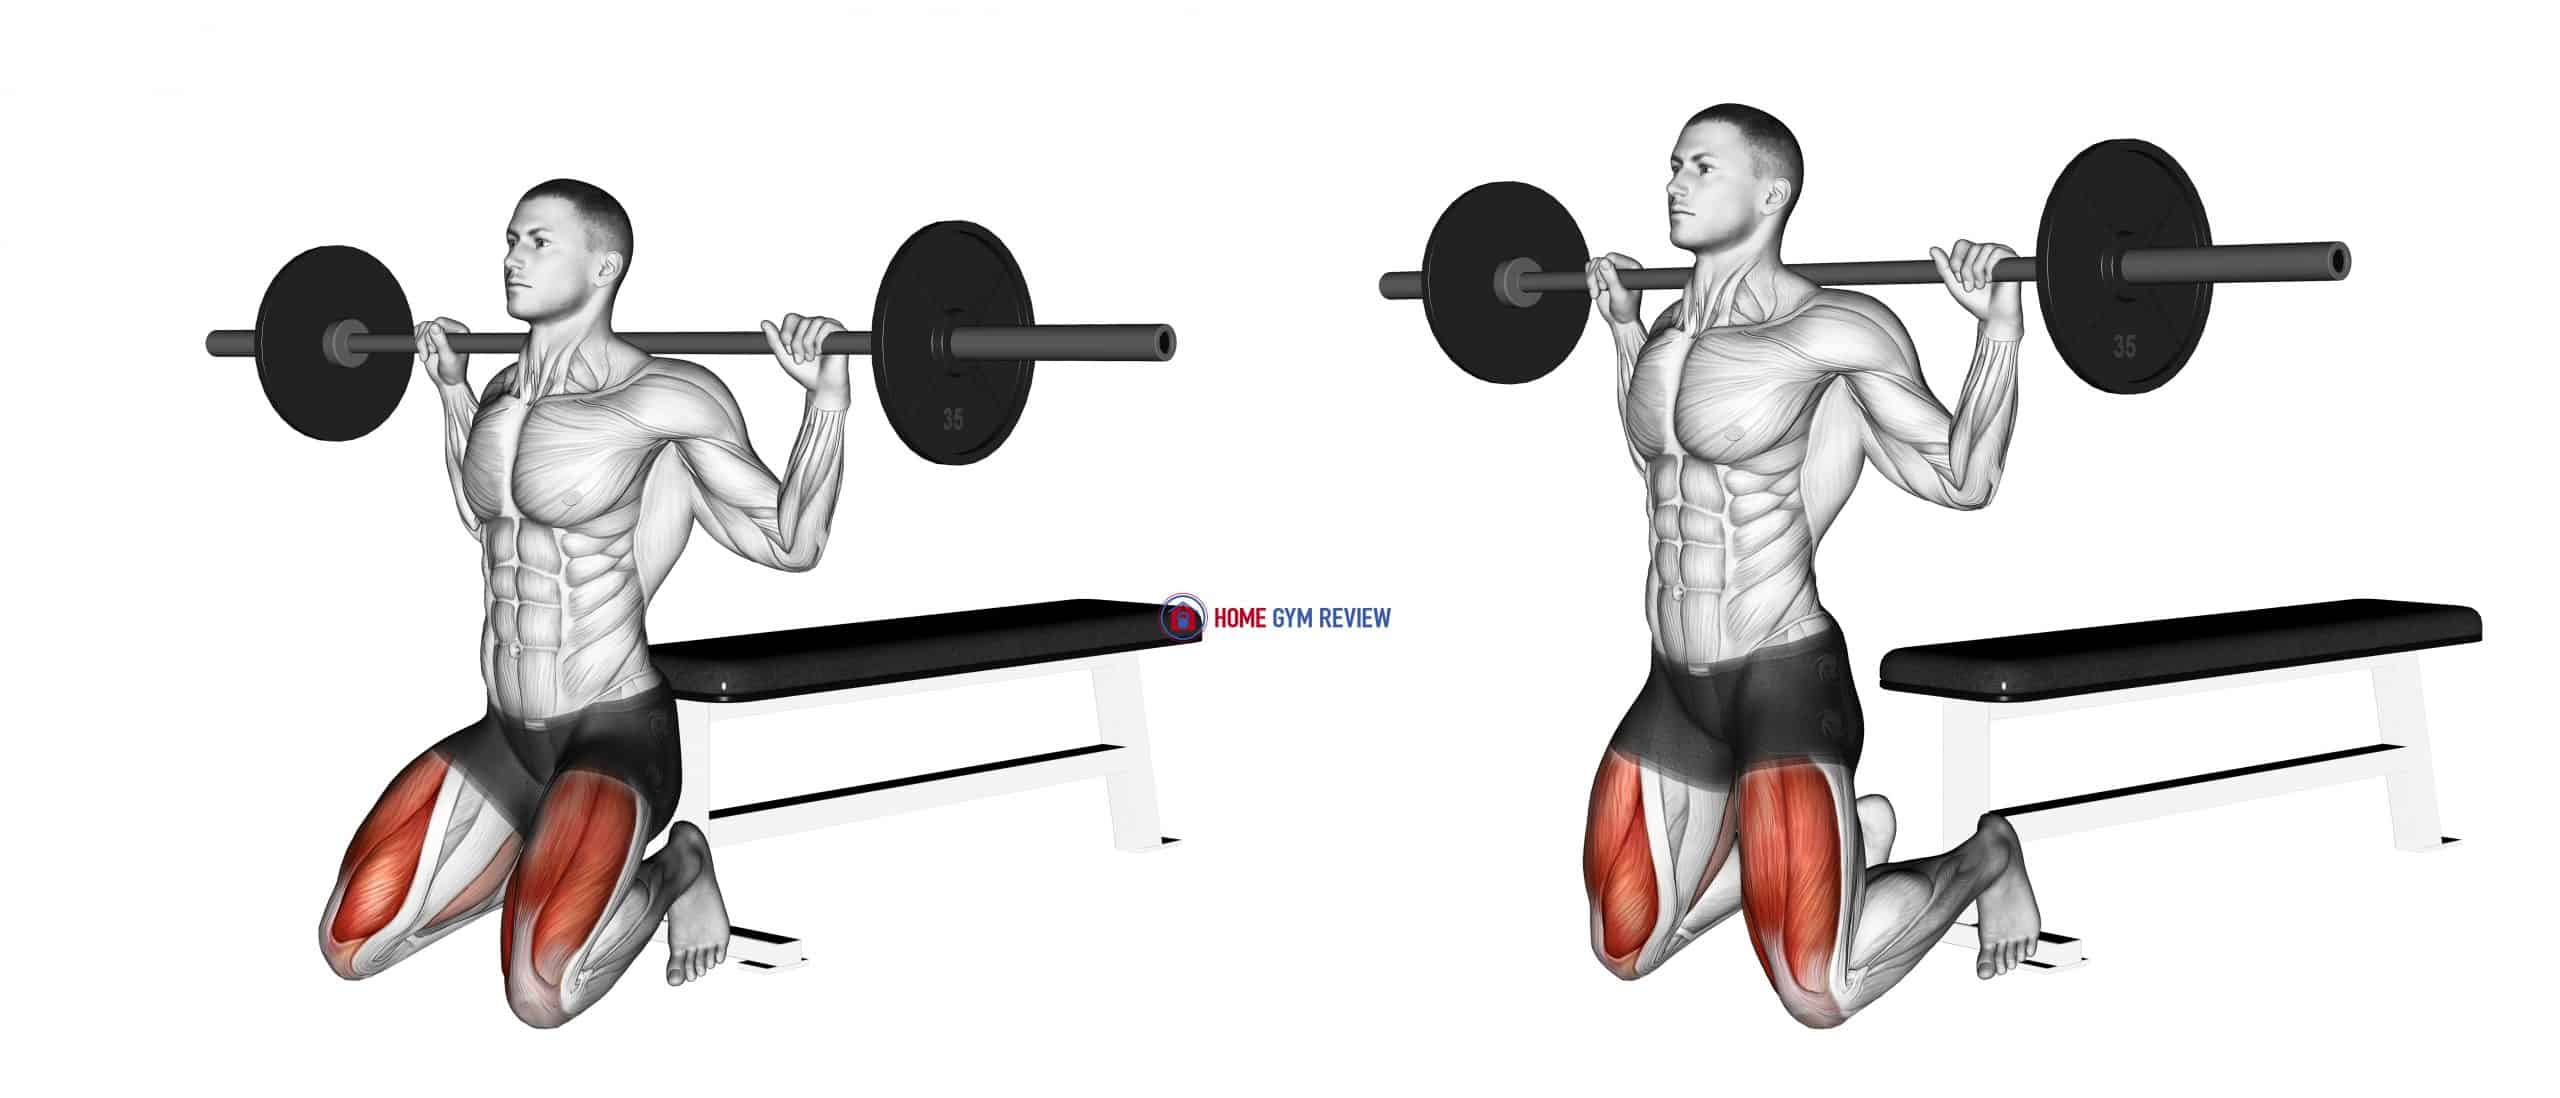 Barbell Squat (on knees)